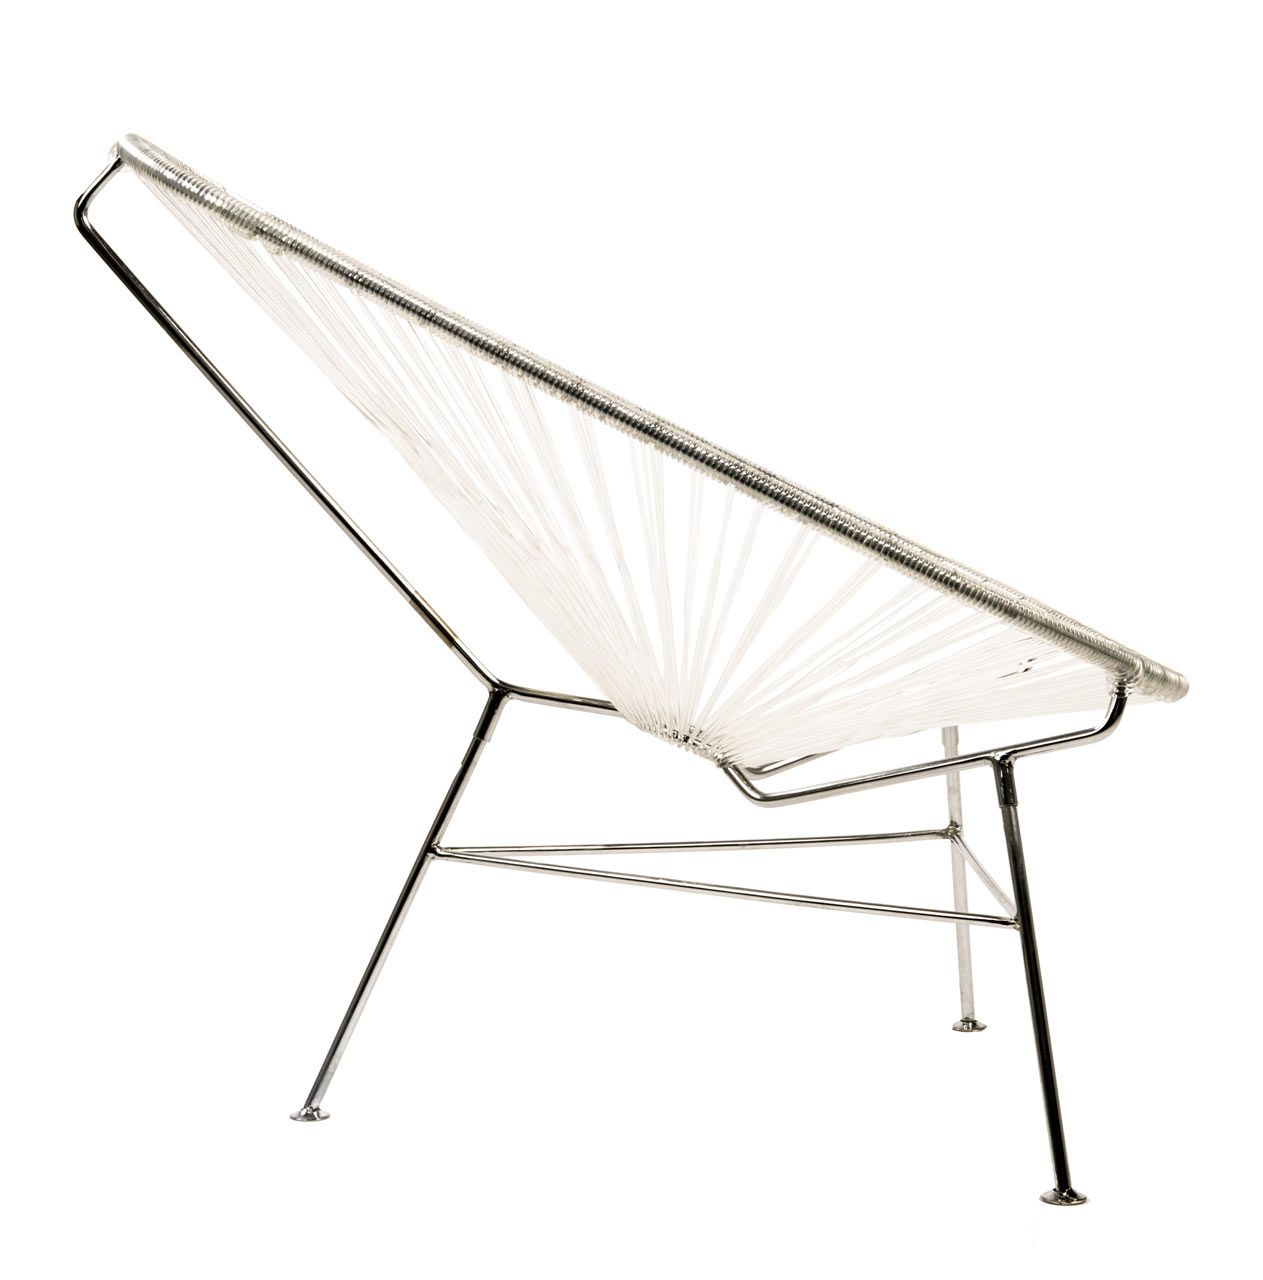 Acapulco chair dimensions - Acapulco Chair Chrome 3